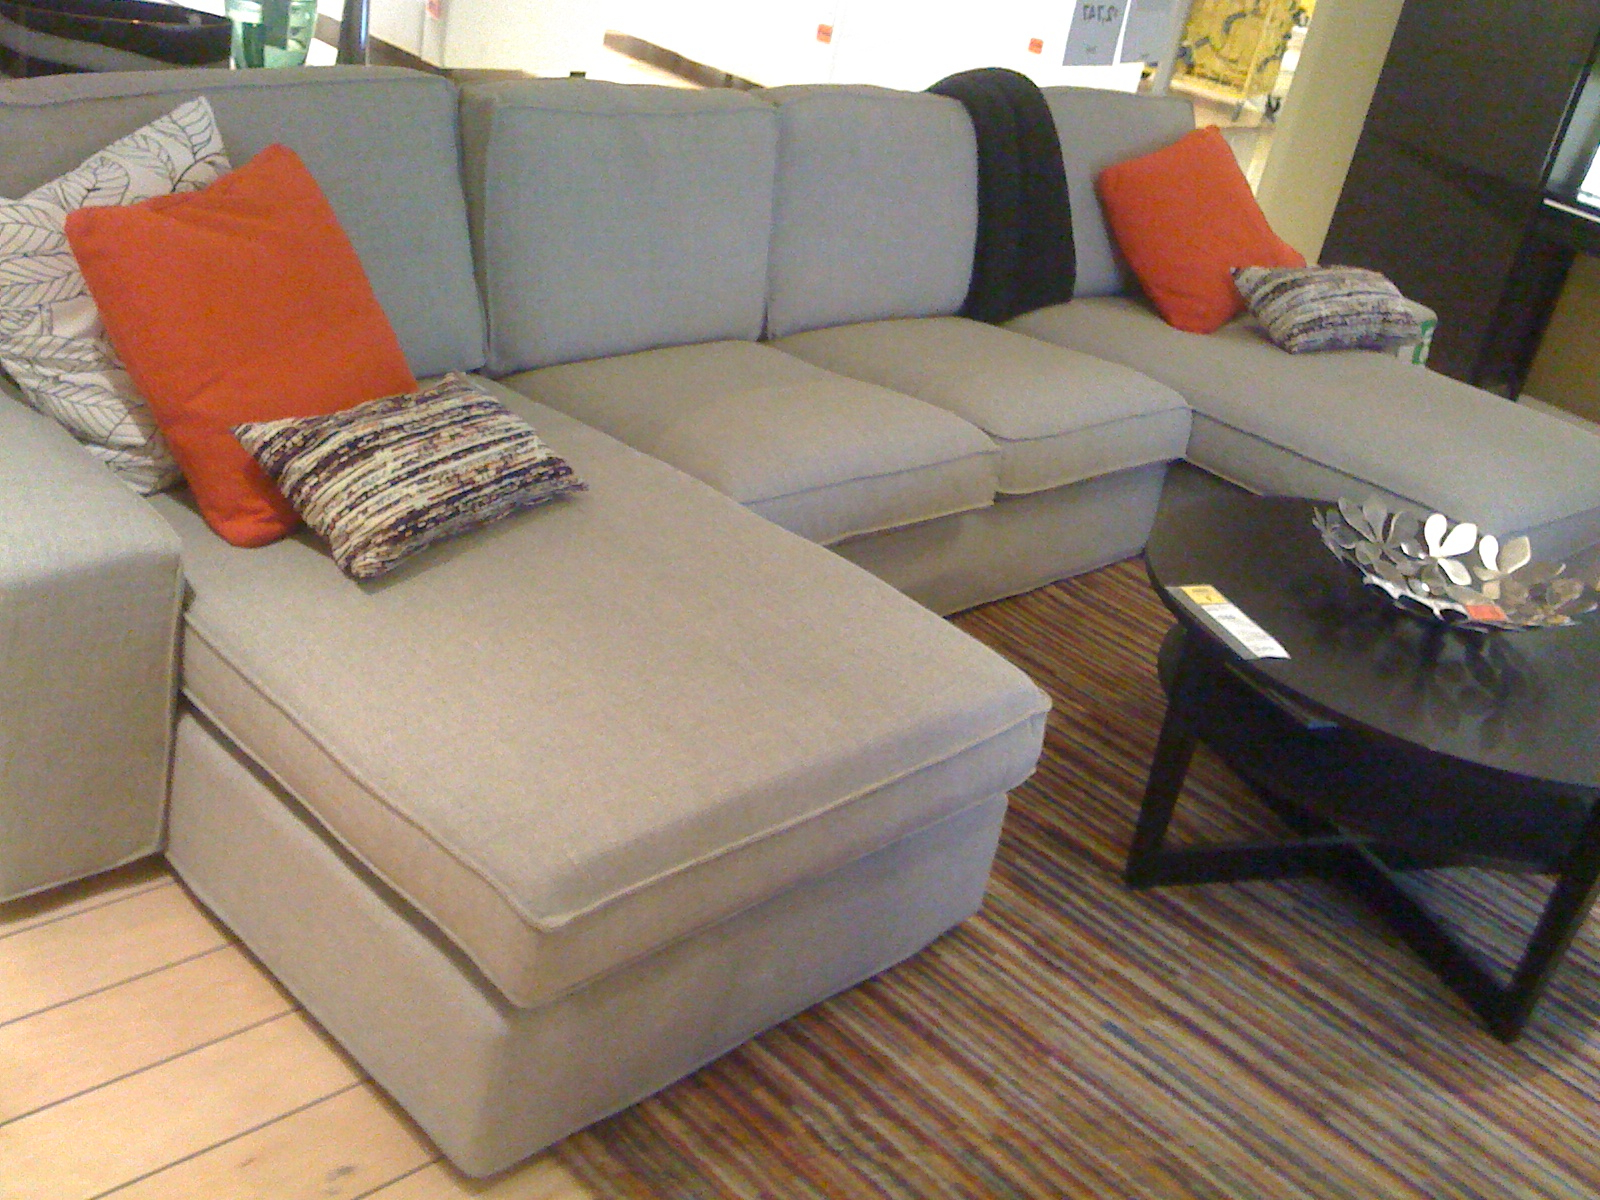 Sofa Kivik Ikea Rldj Ikea Presents New Kivik sofa Range fort Works Blog Design